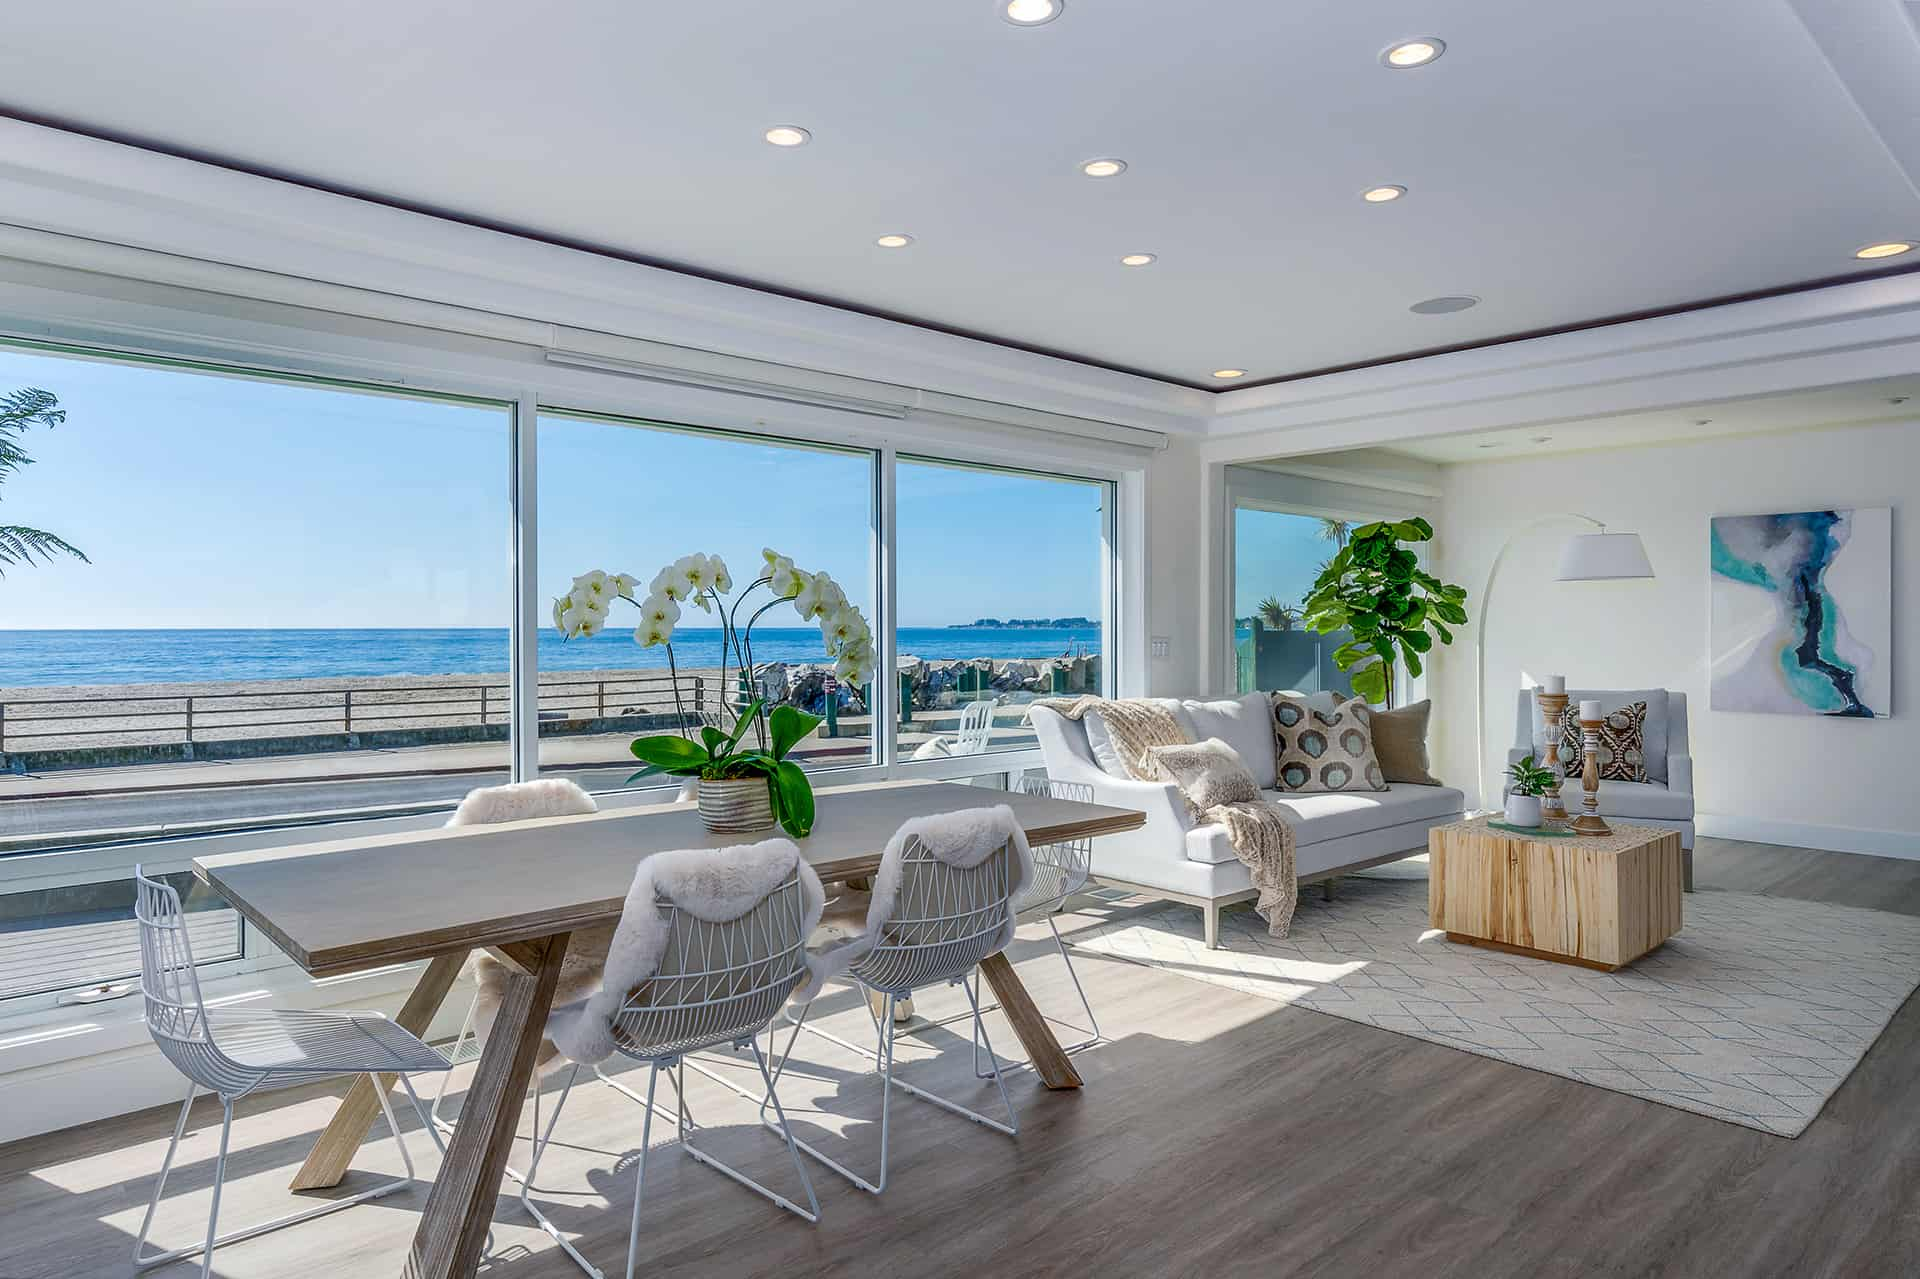 Extra large windows provide a wide, unobstructed ocean view